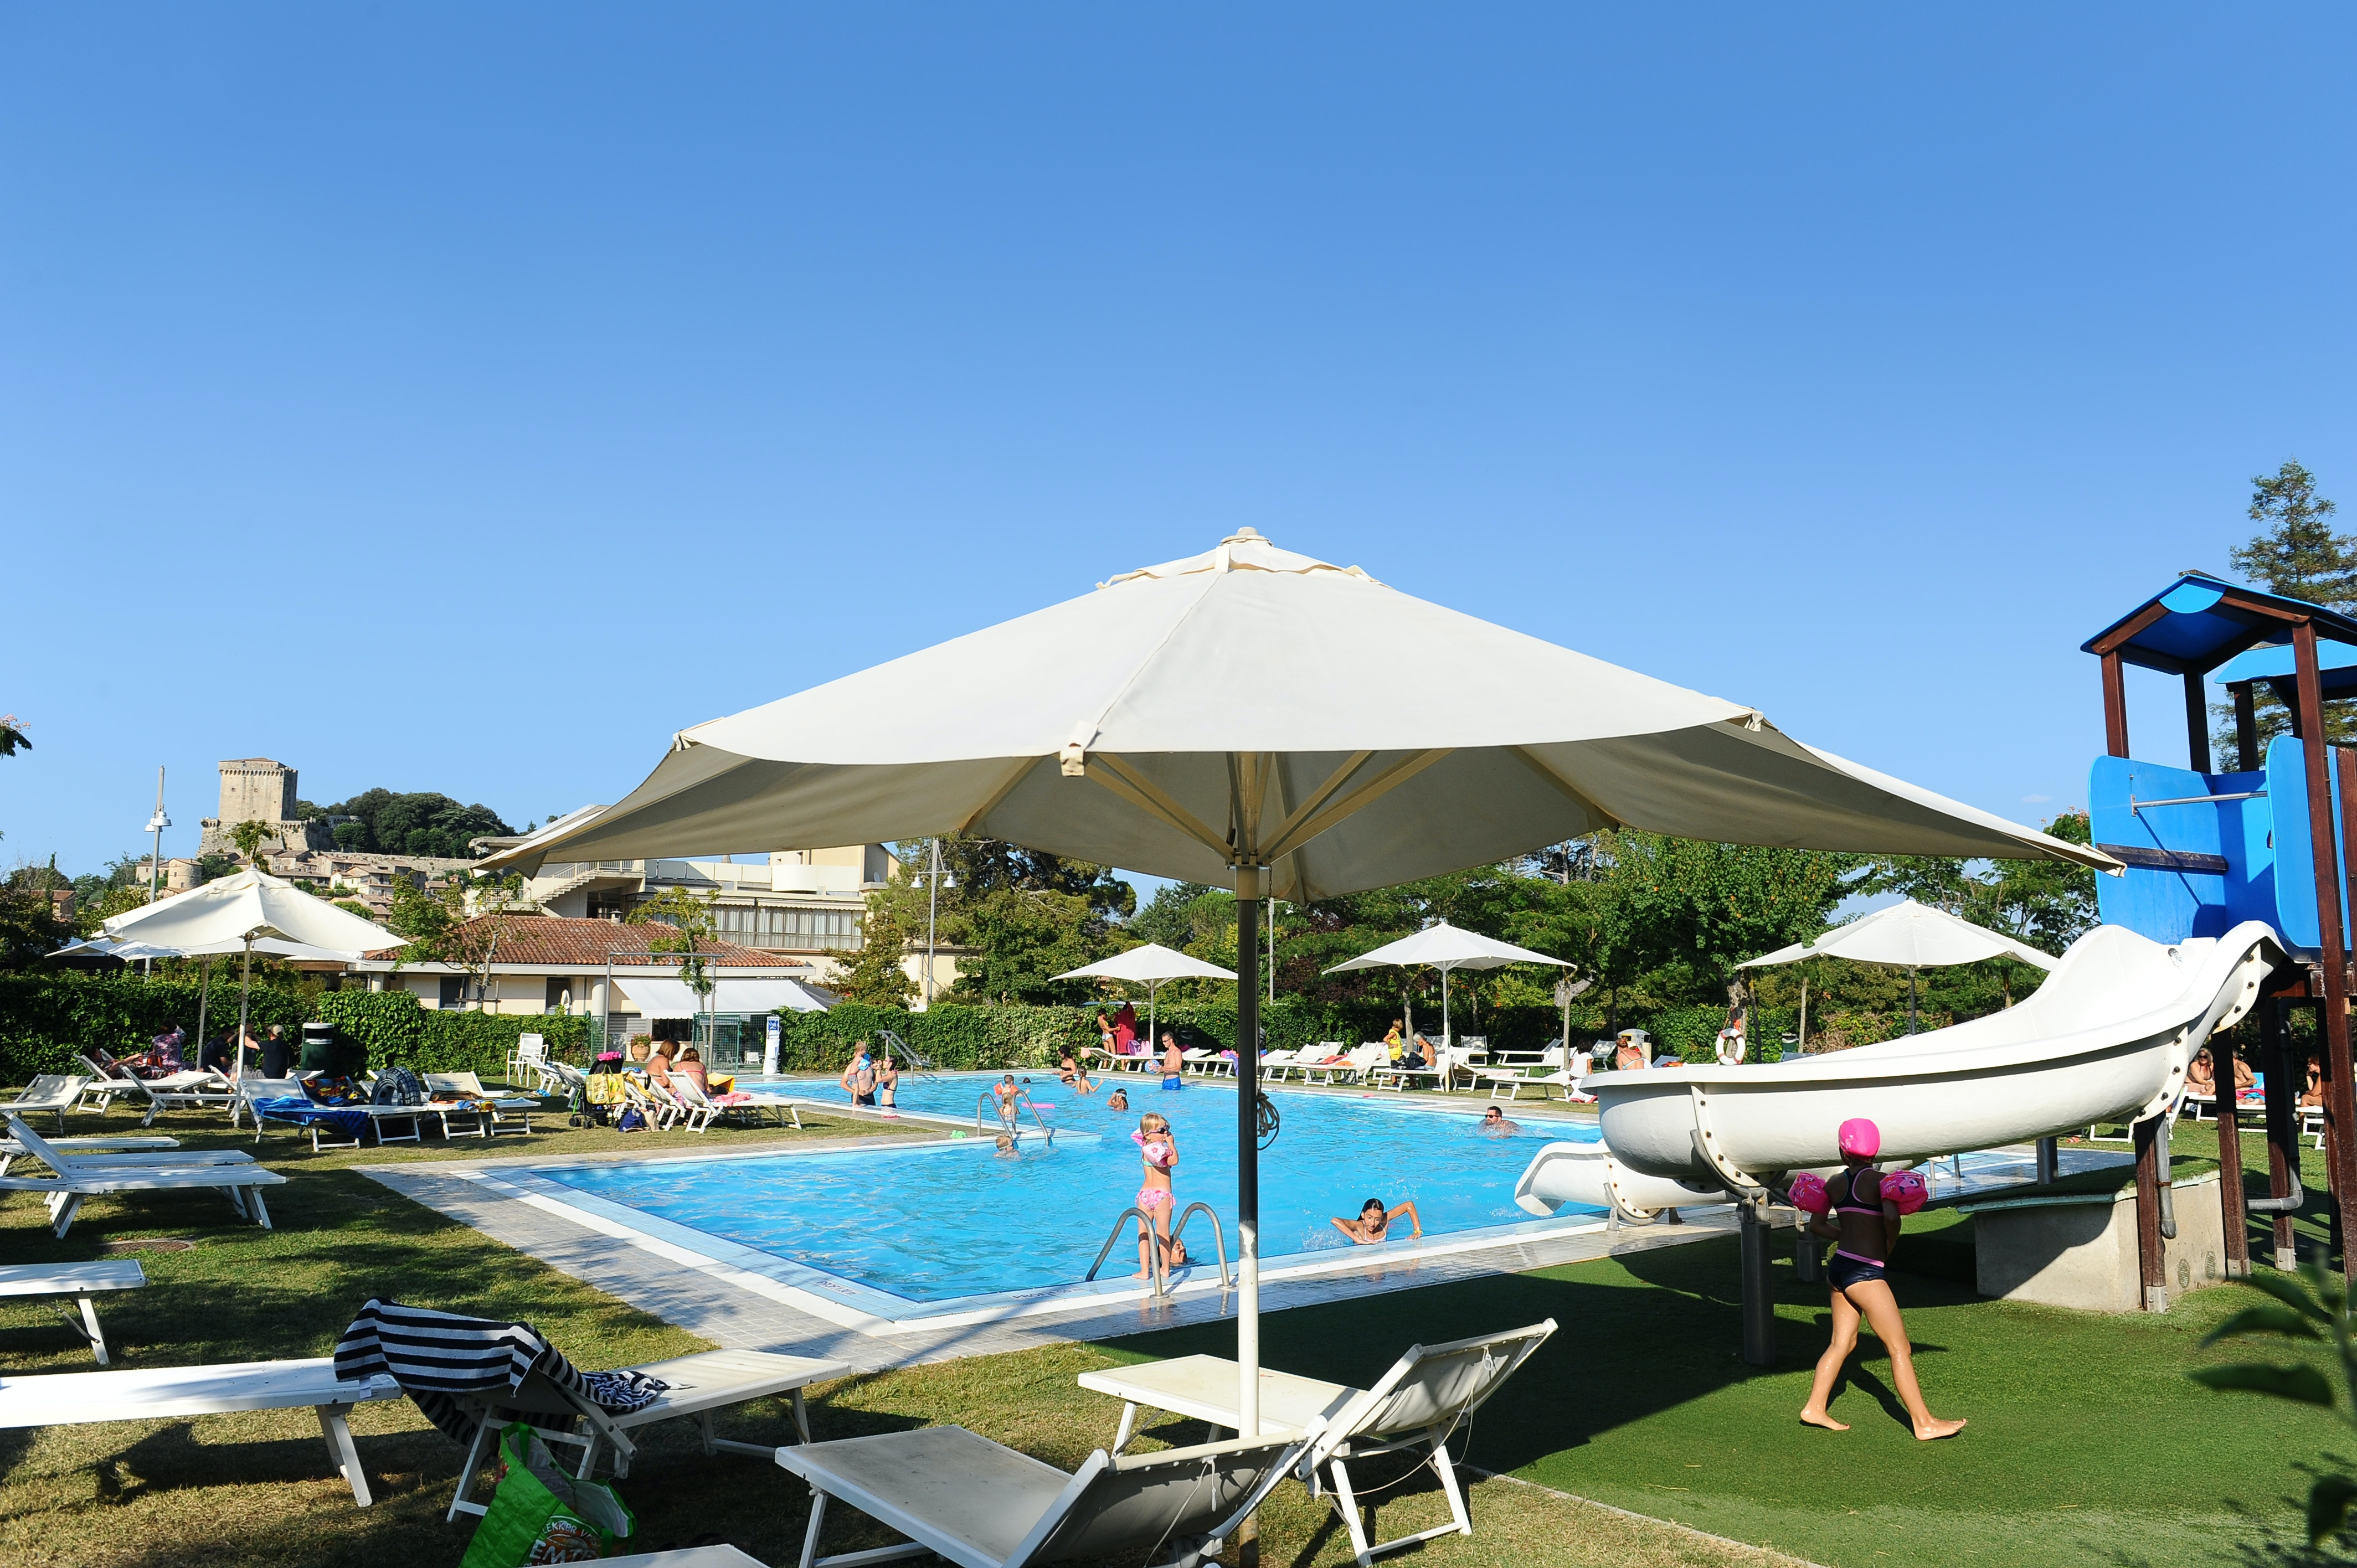 Camping Parco delle Piscine zwembad ligweide